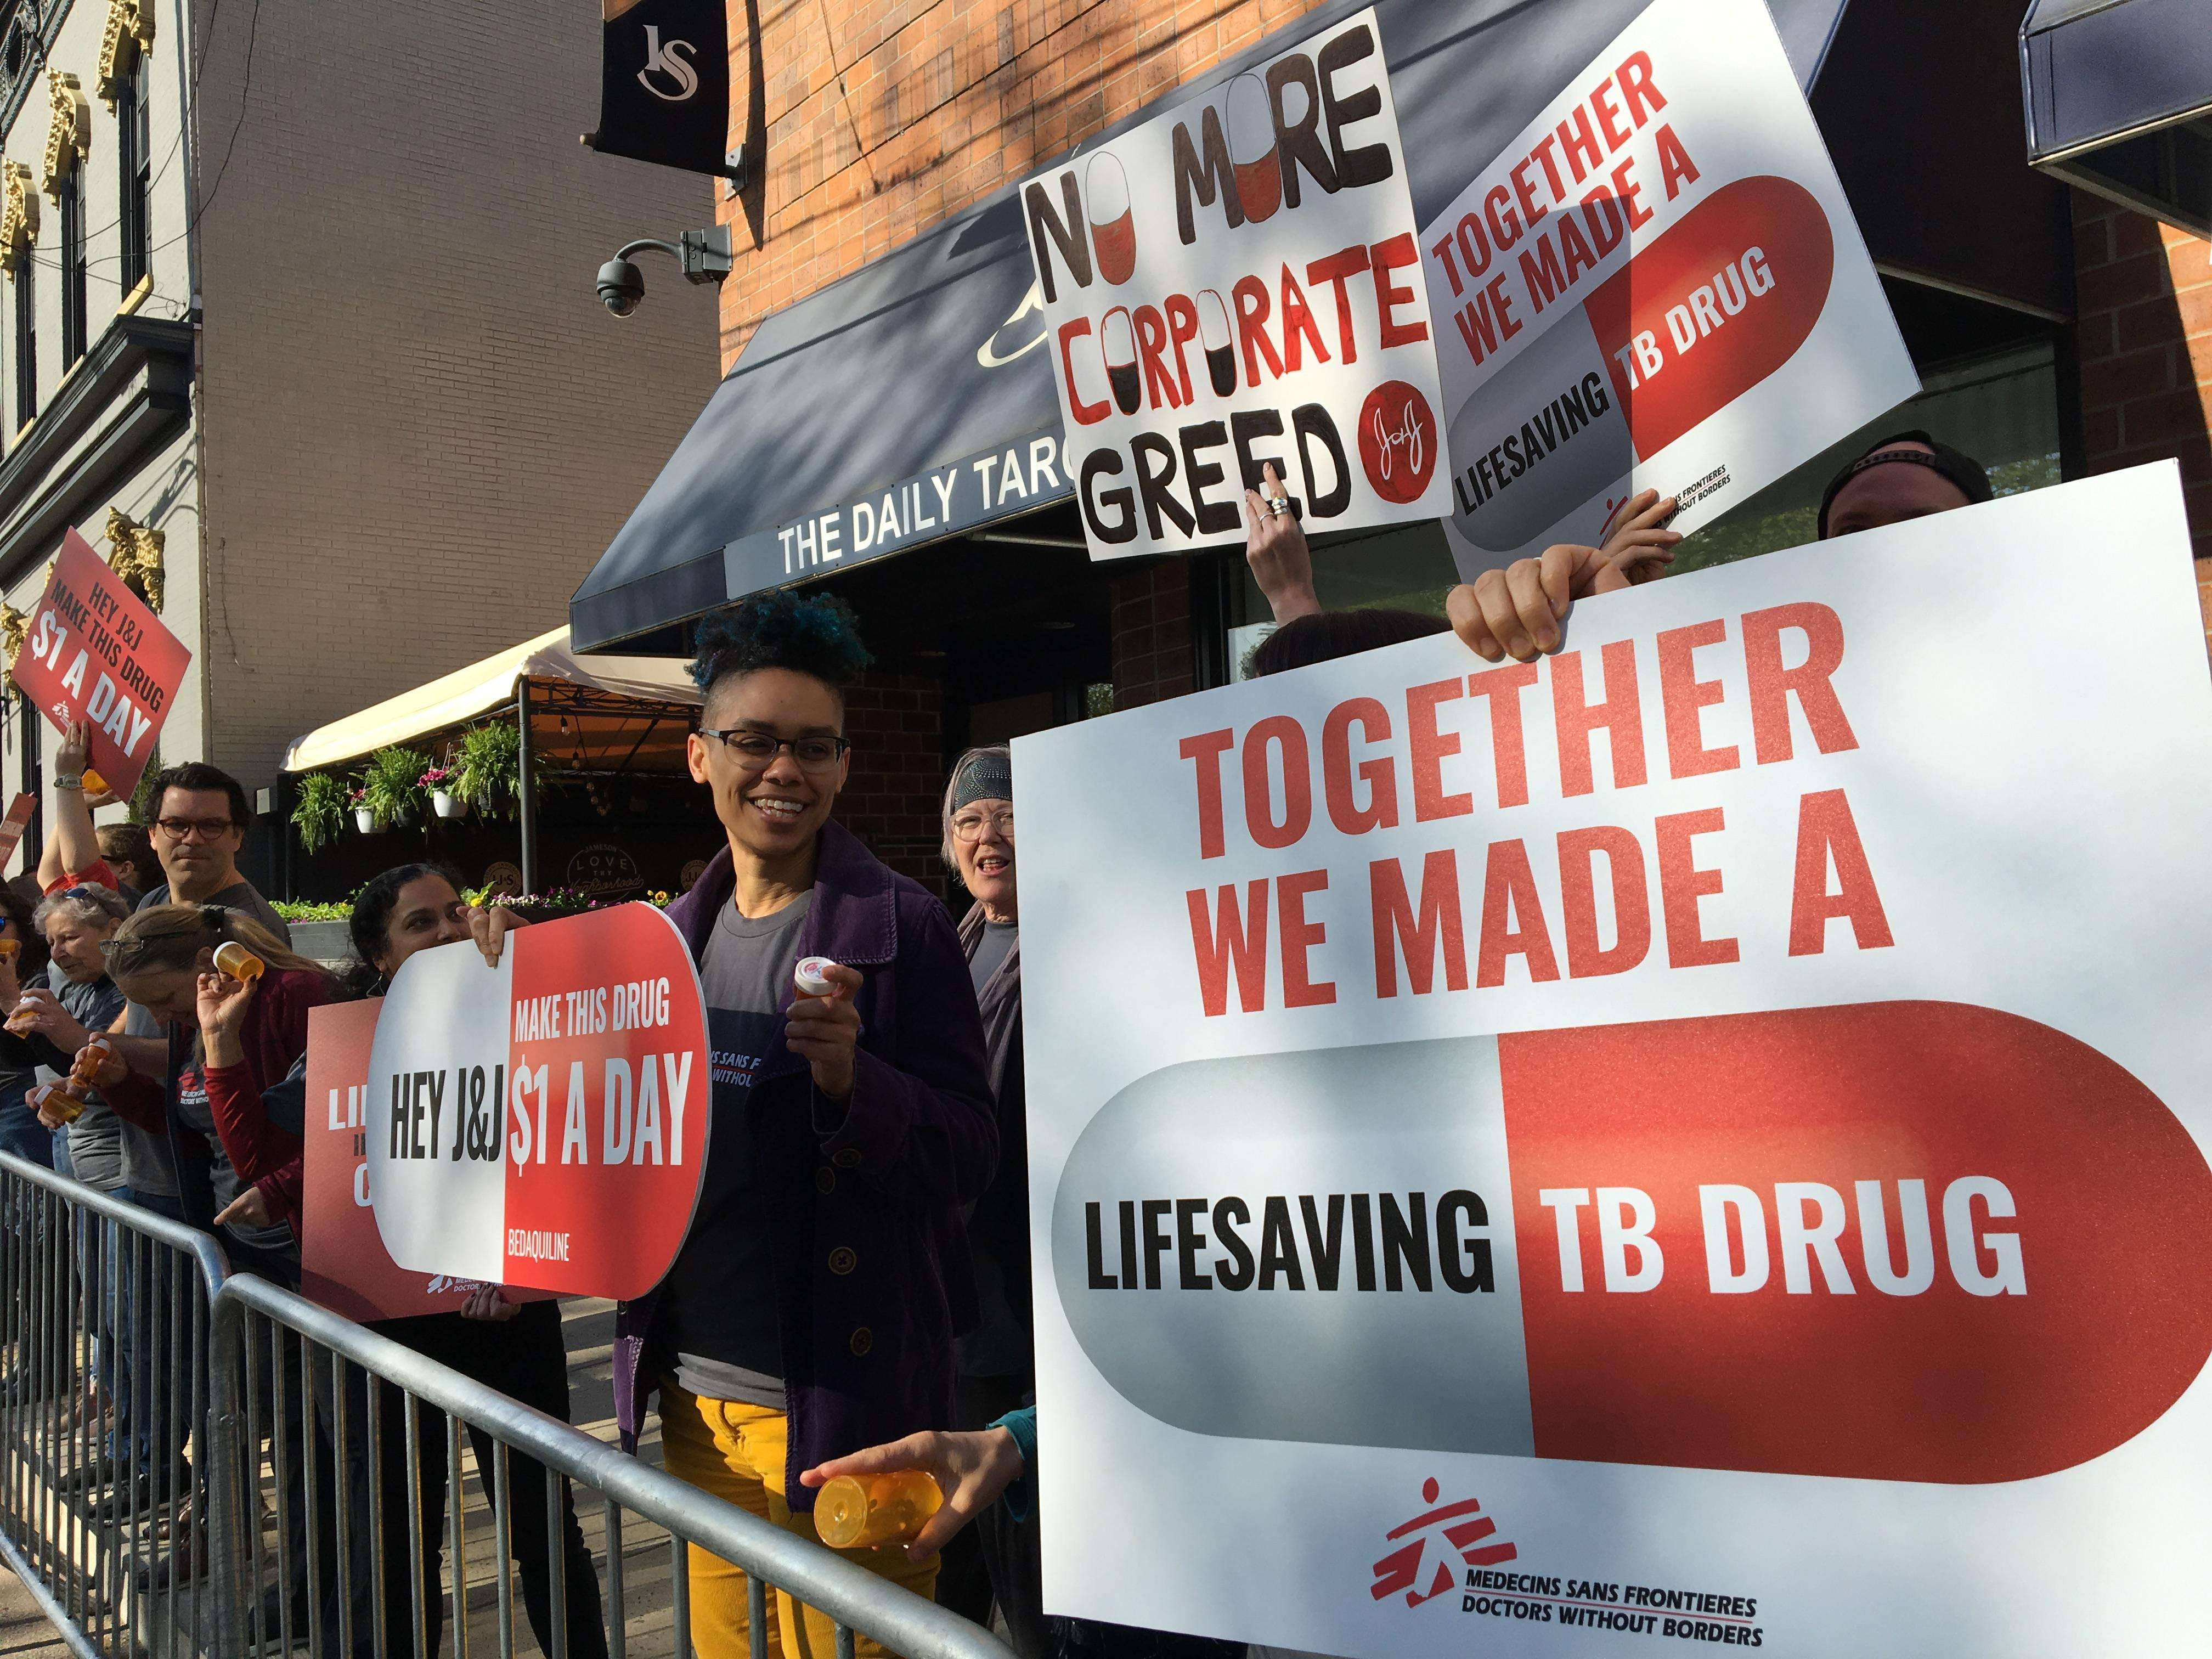 MSF: Johnson & Johnson should make TB drug available for all at $1/day